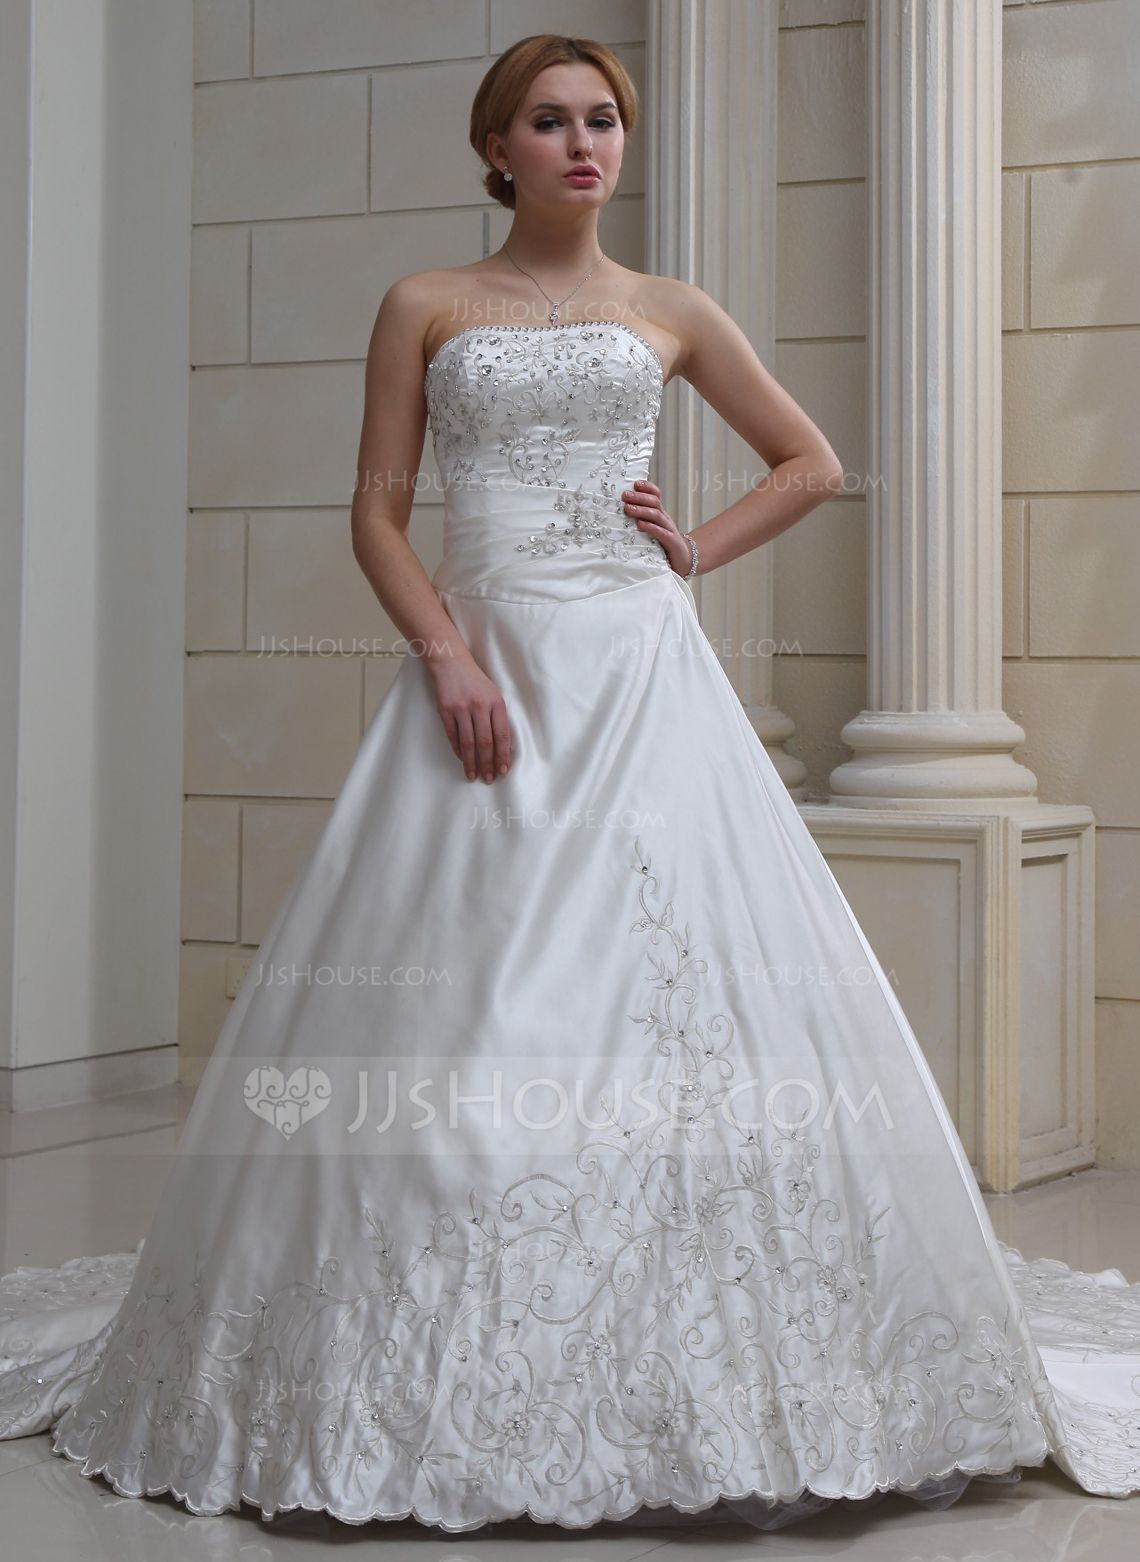 Ballgown sweetheart royal train satin wedding dress with